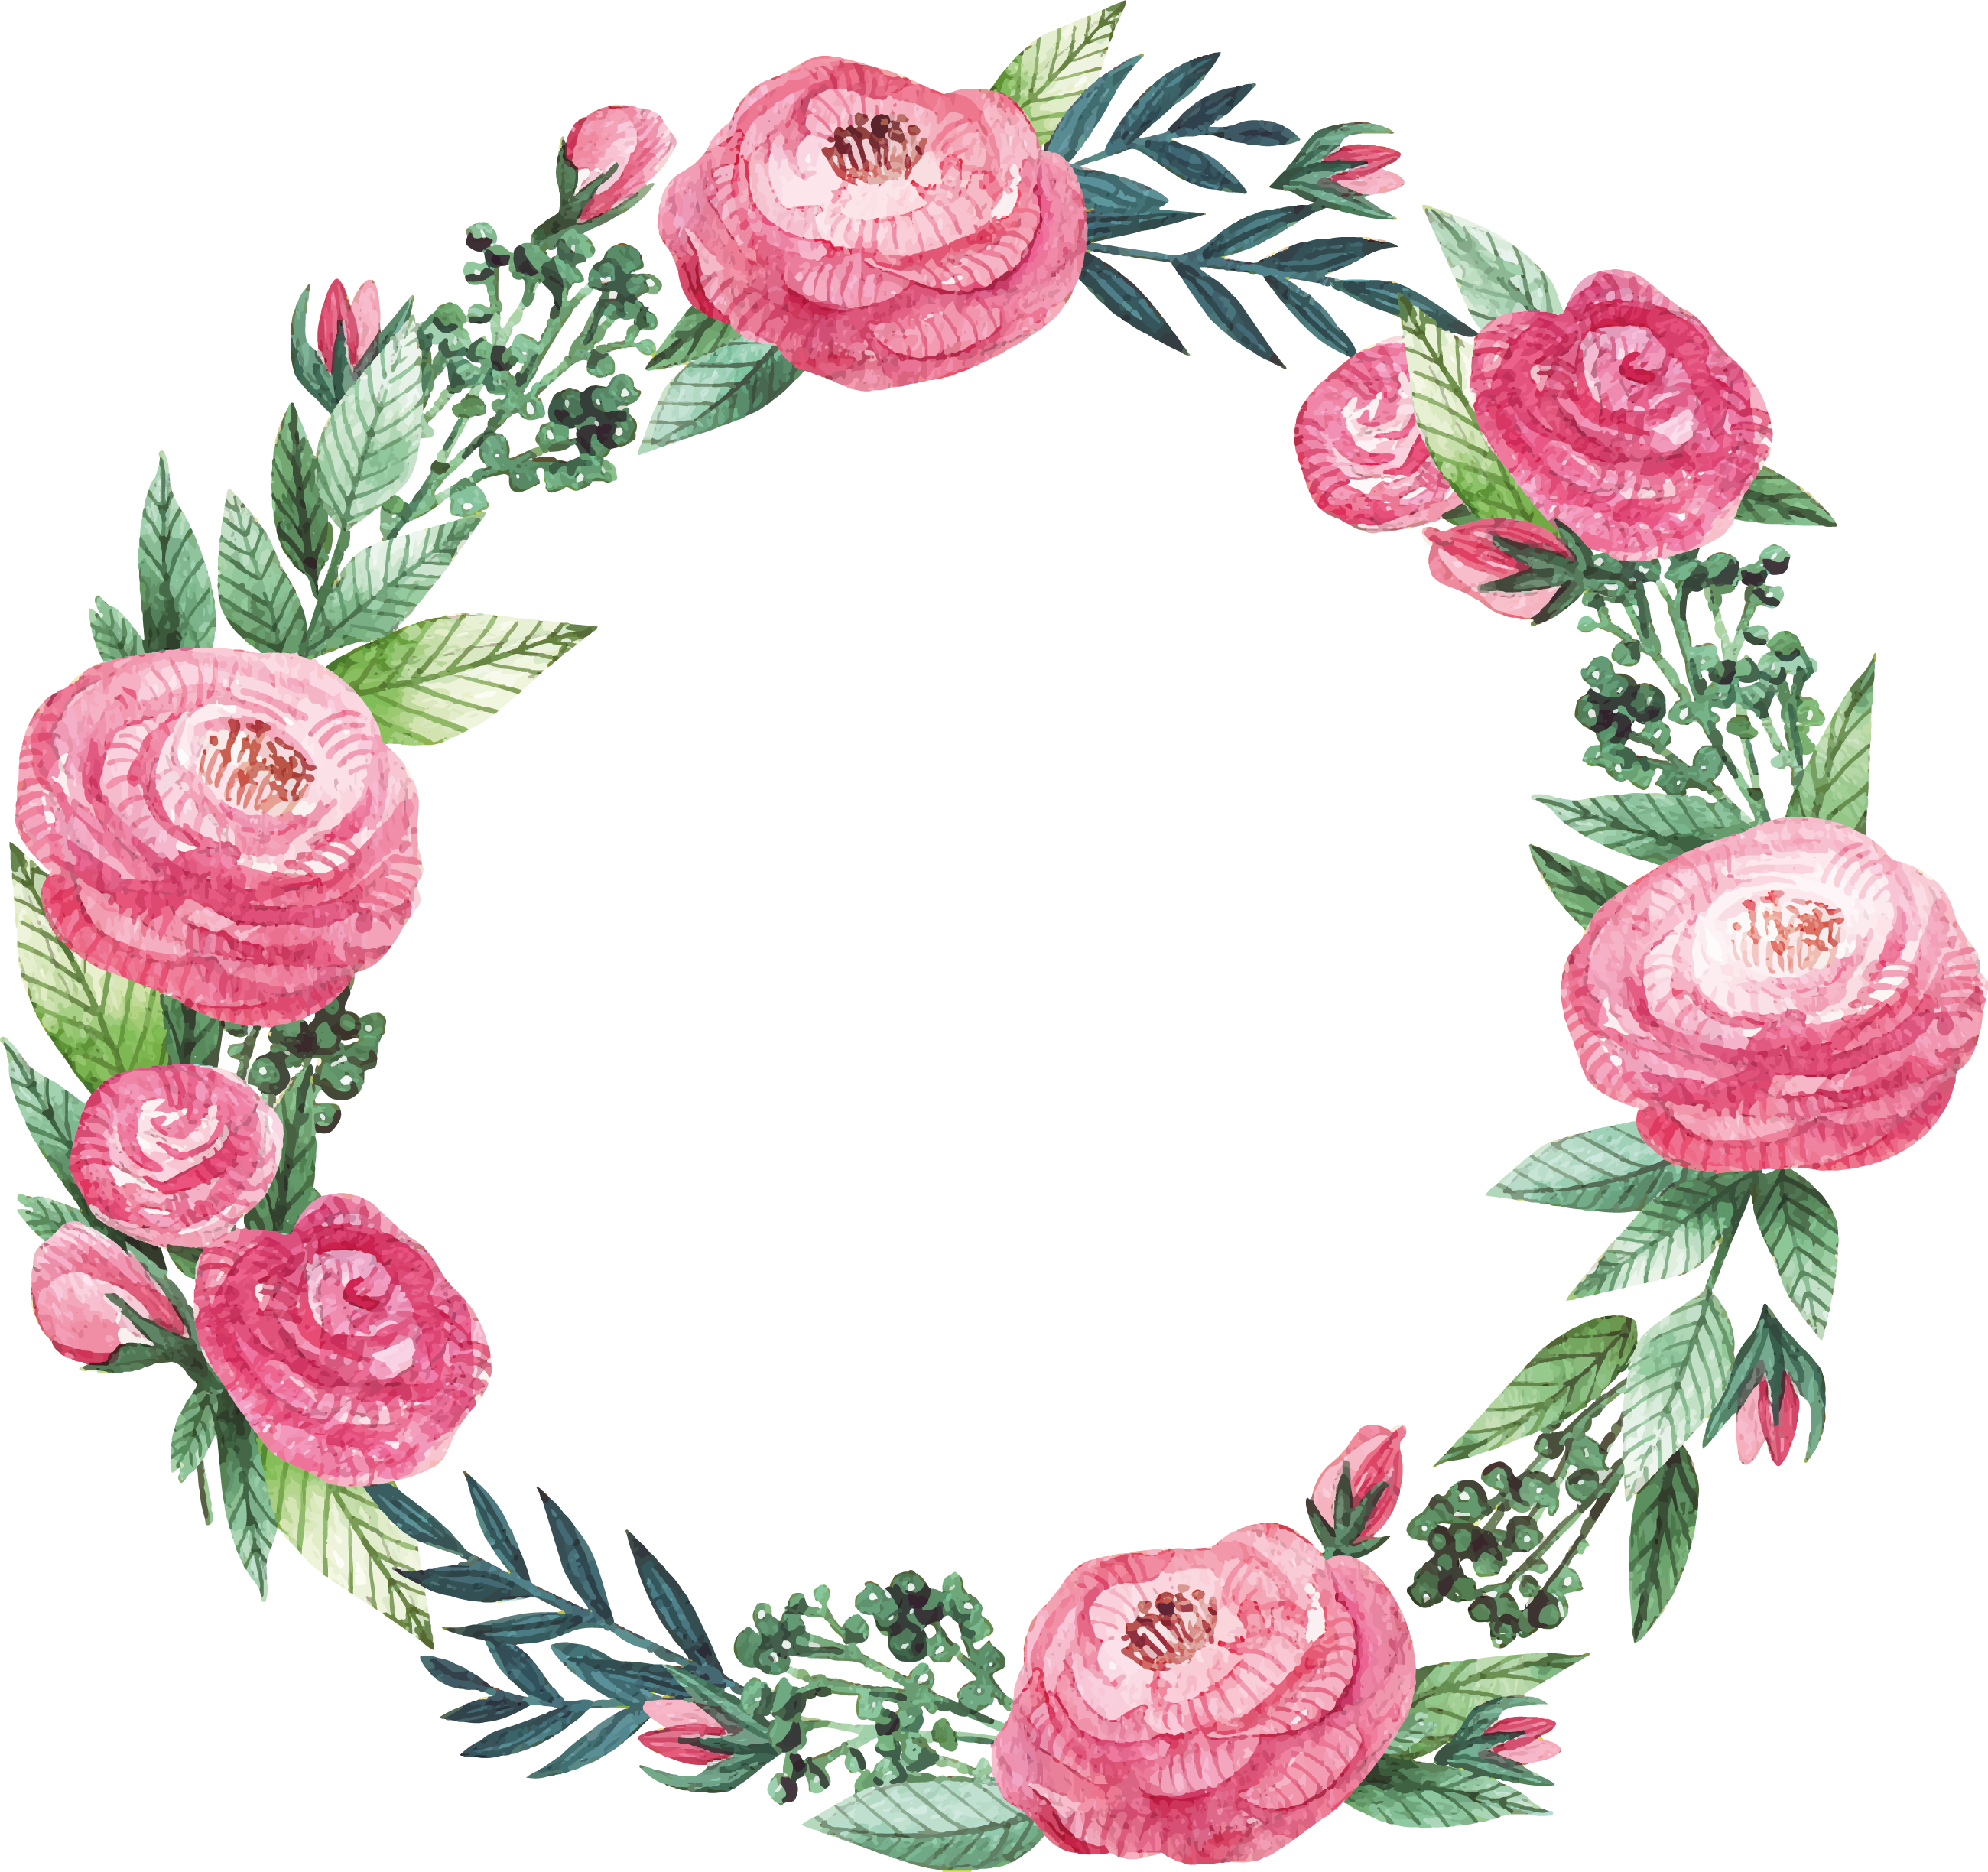 Download Graphic Royalty Free Download Floral Frame Clipart Pink